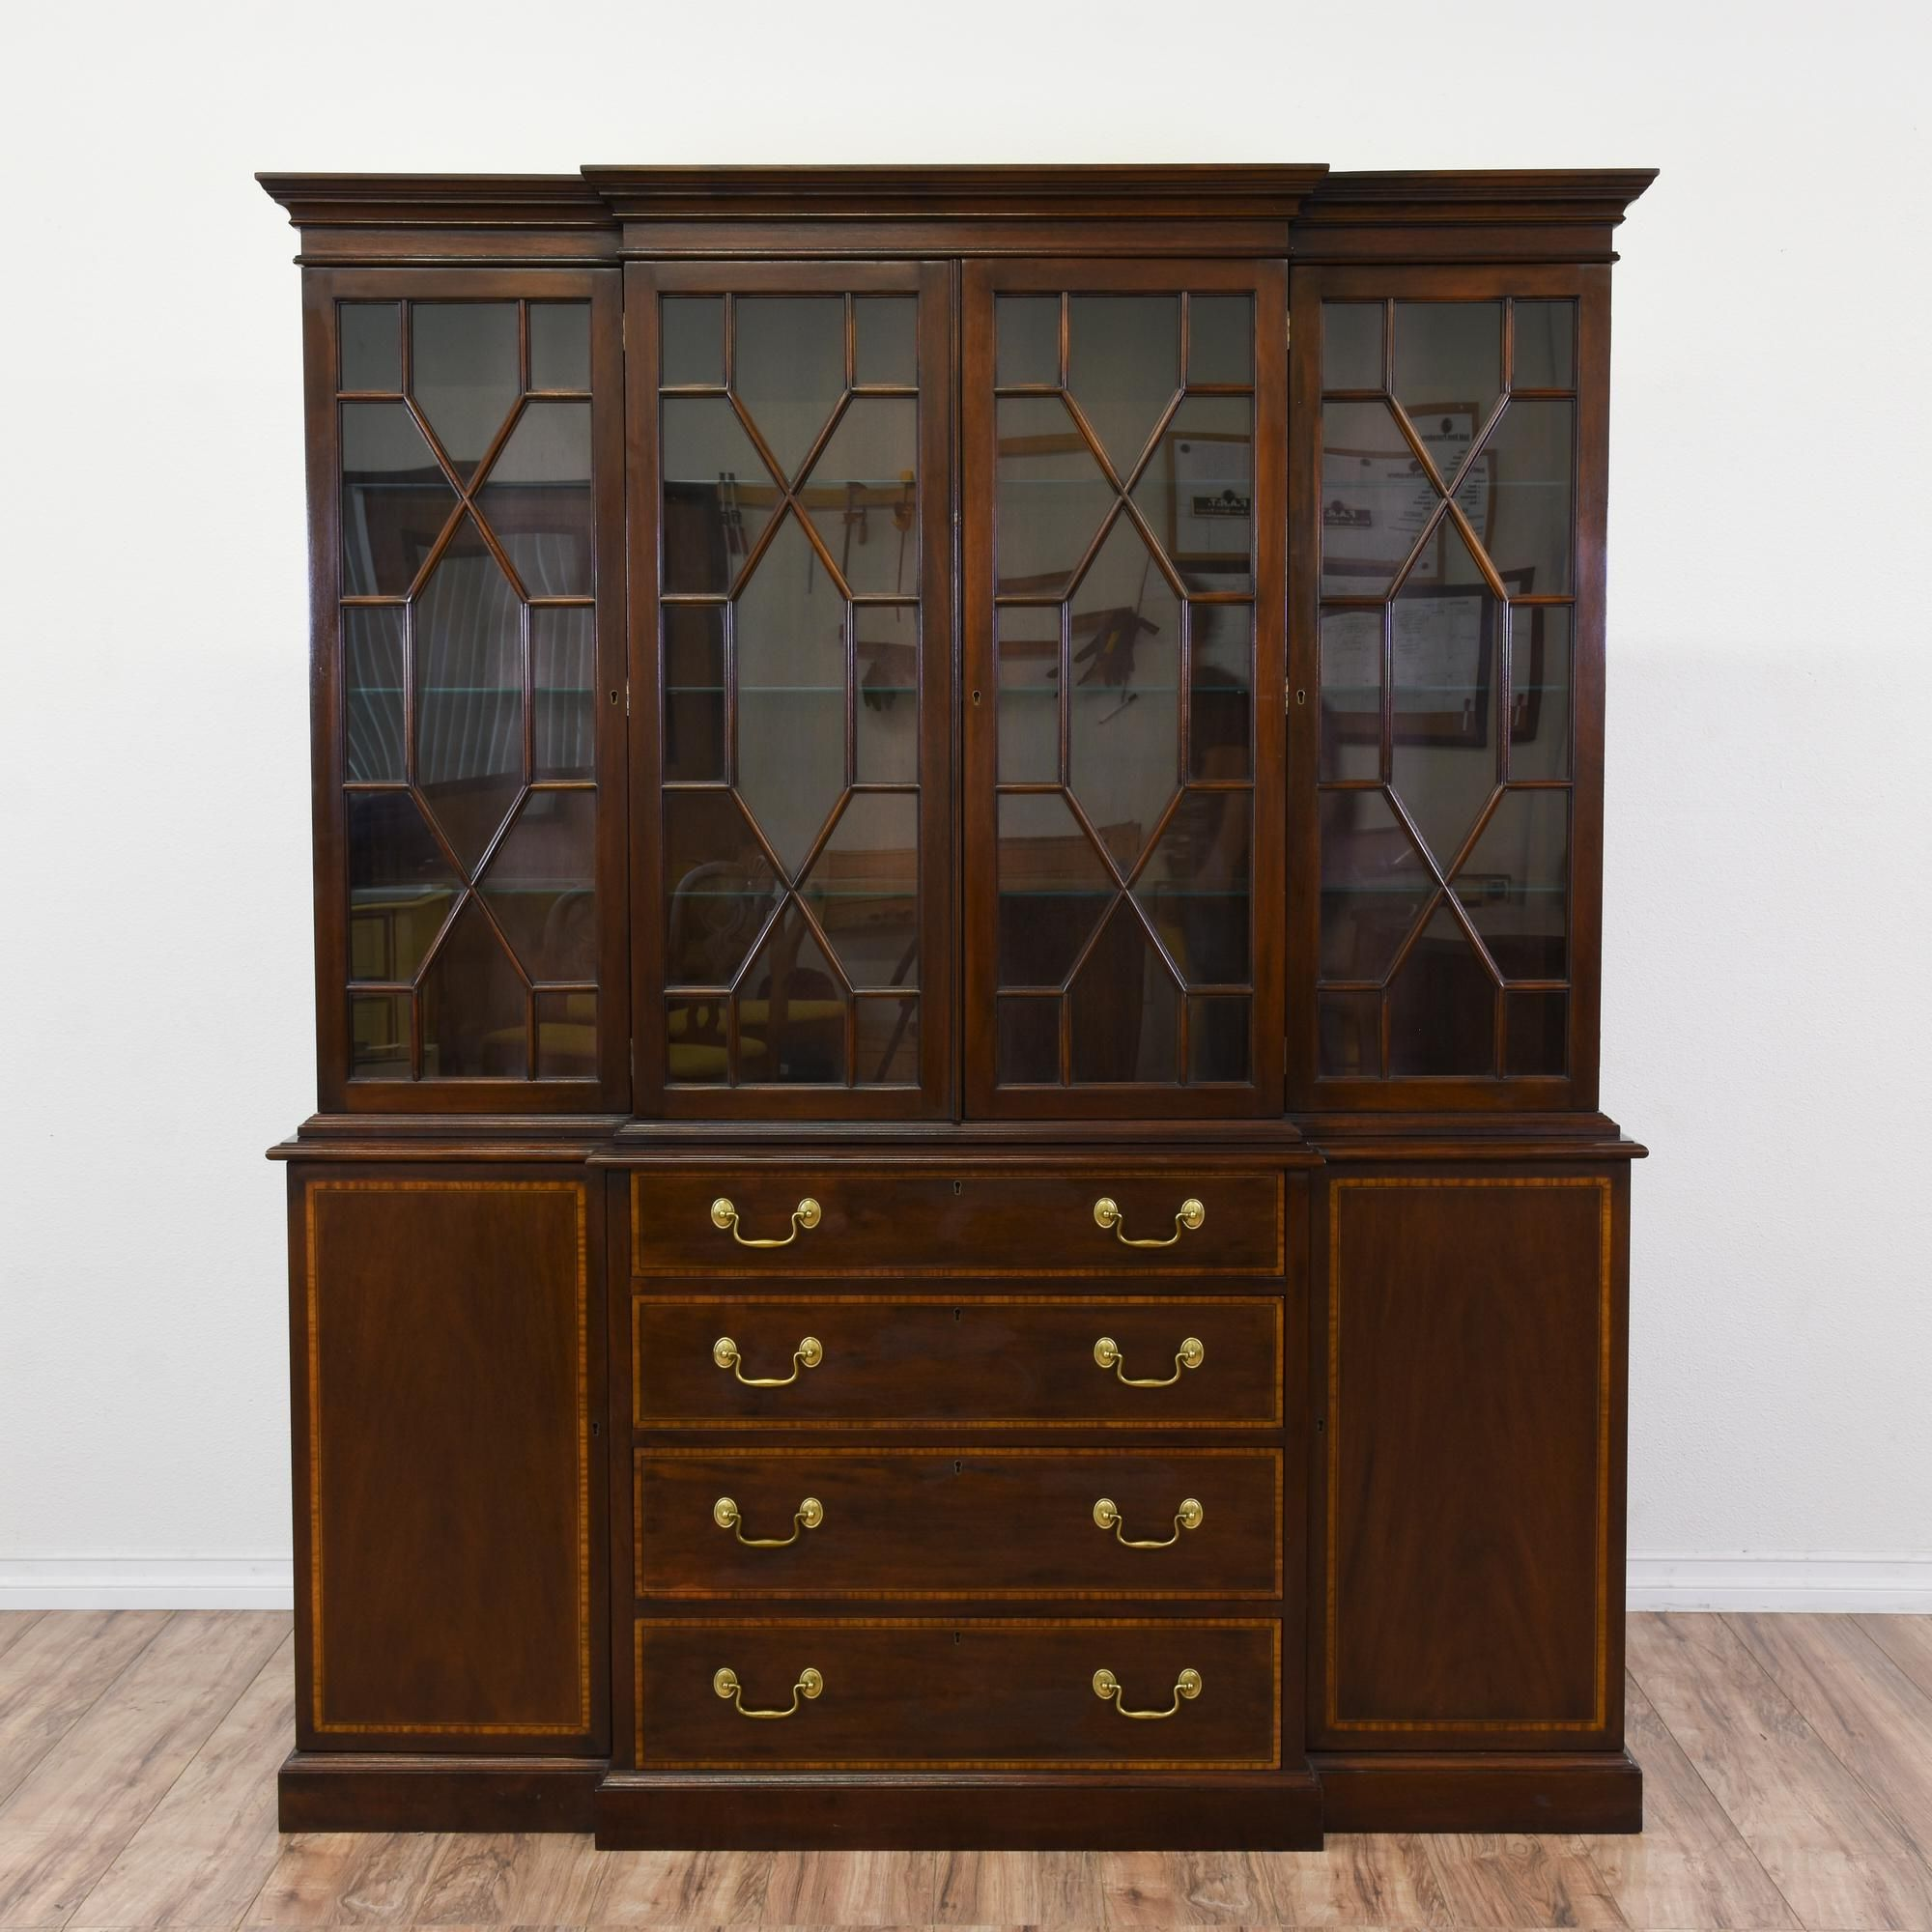 Best Gorgeous Large Mahogany China Cabinet At 6 5 Feet Tall 400 x 300